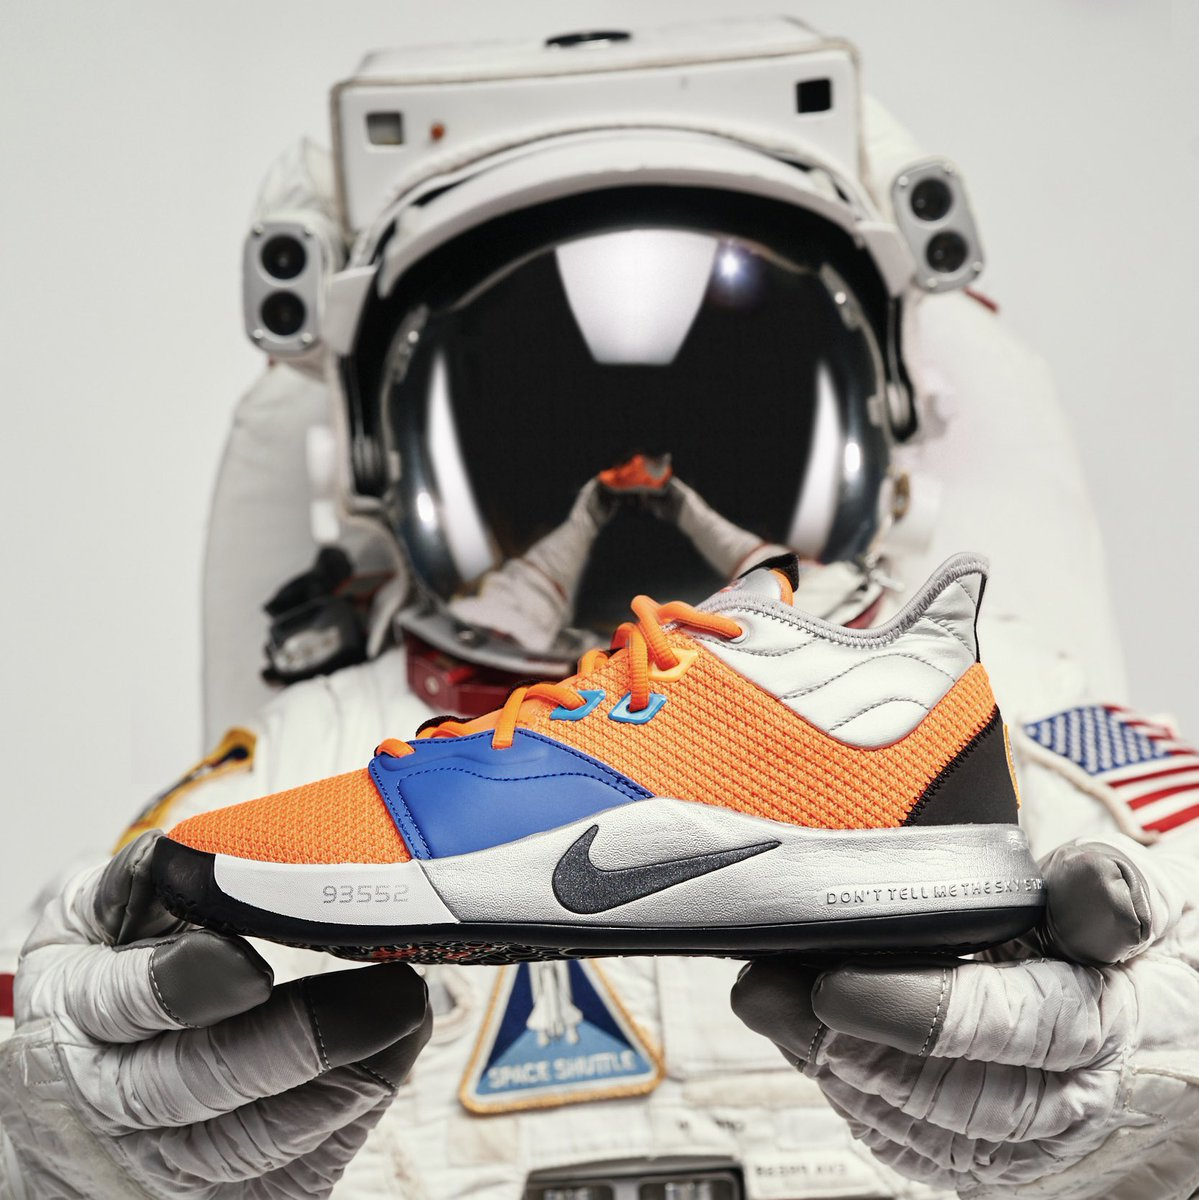 """58ae2021cd3 Here s an official first look at the limited-edition """"NASA"""" Nike PG 3 that  is set to release later this month on January 26th.  Thoughts pic.twitter.com  ..."""